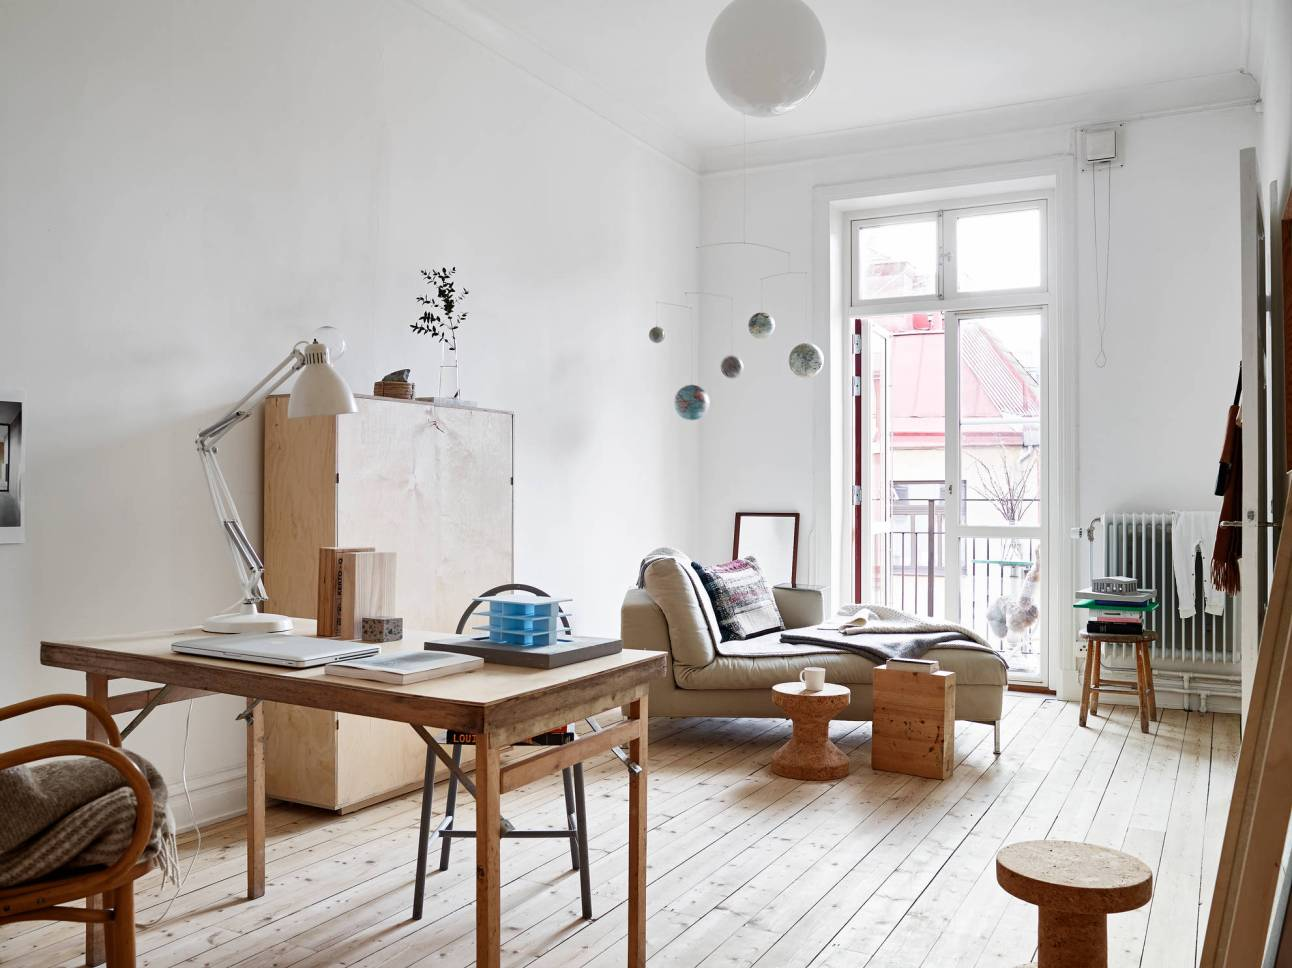 6 Ideas for Creating the Perfect Work From Home Space